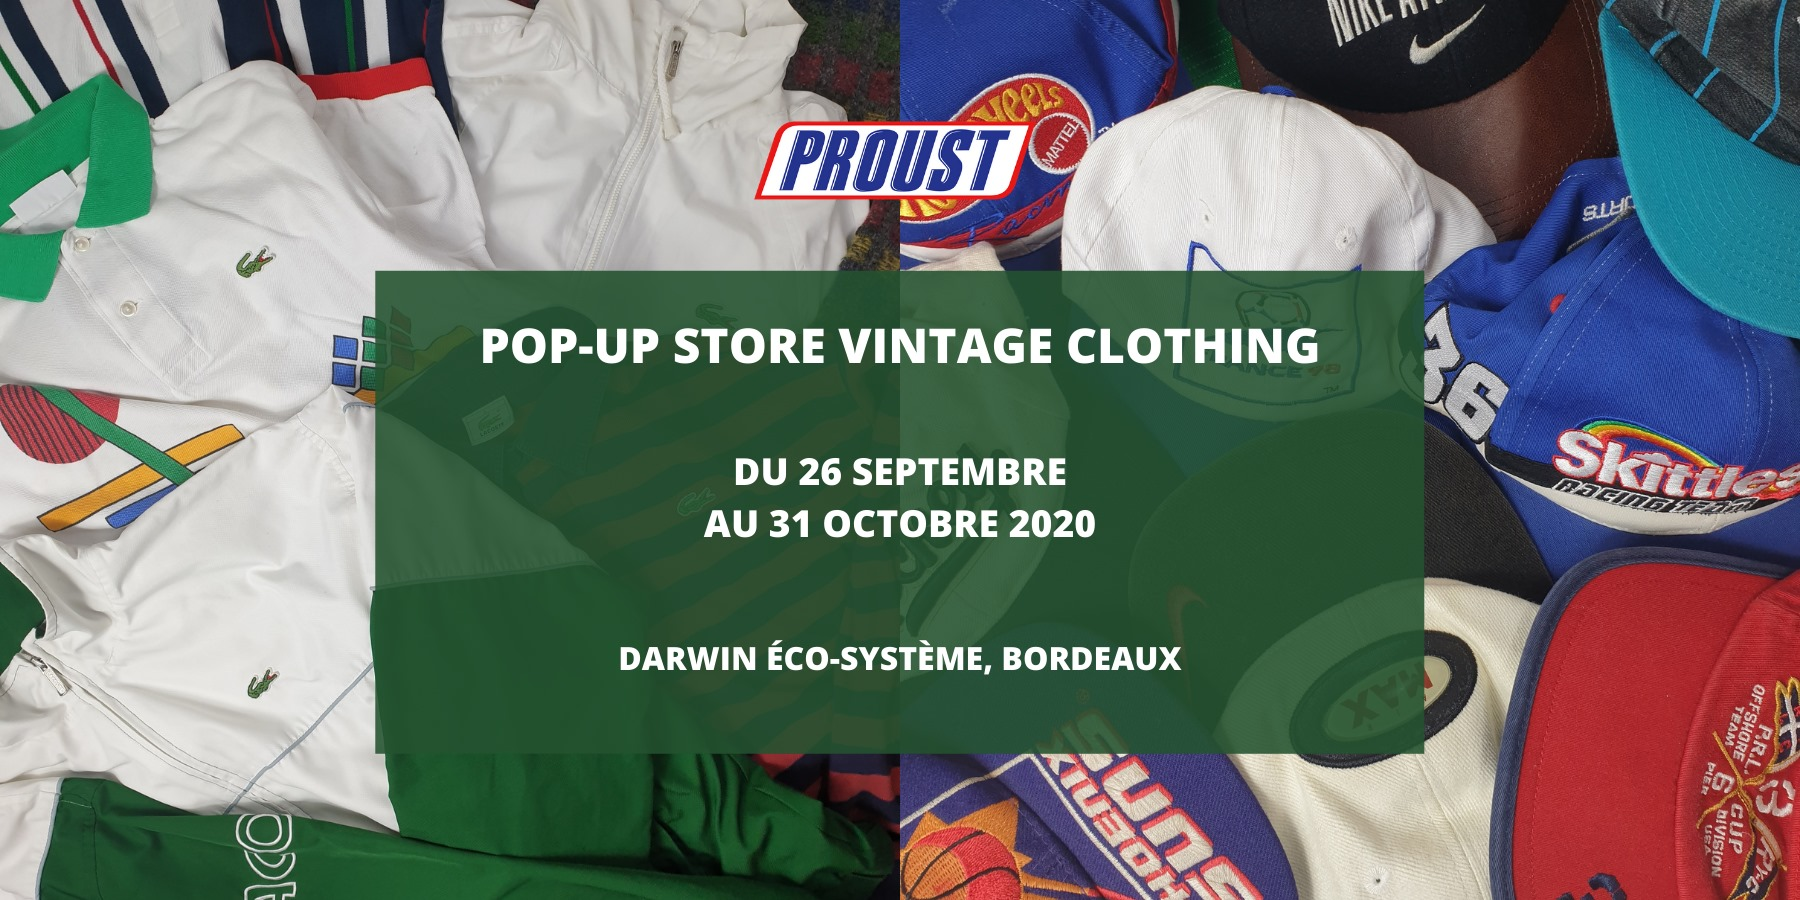 https://the-place-to-be.fr/wp-content/uploads/2020/09/popupstore-vintage-clothing-darwin-bordeaux.jpg